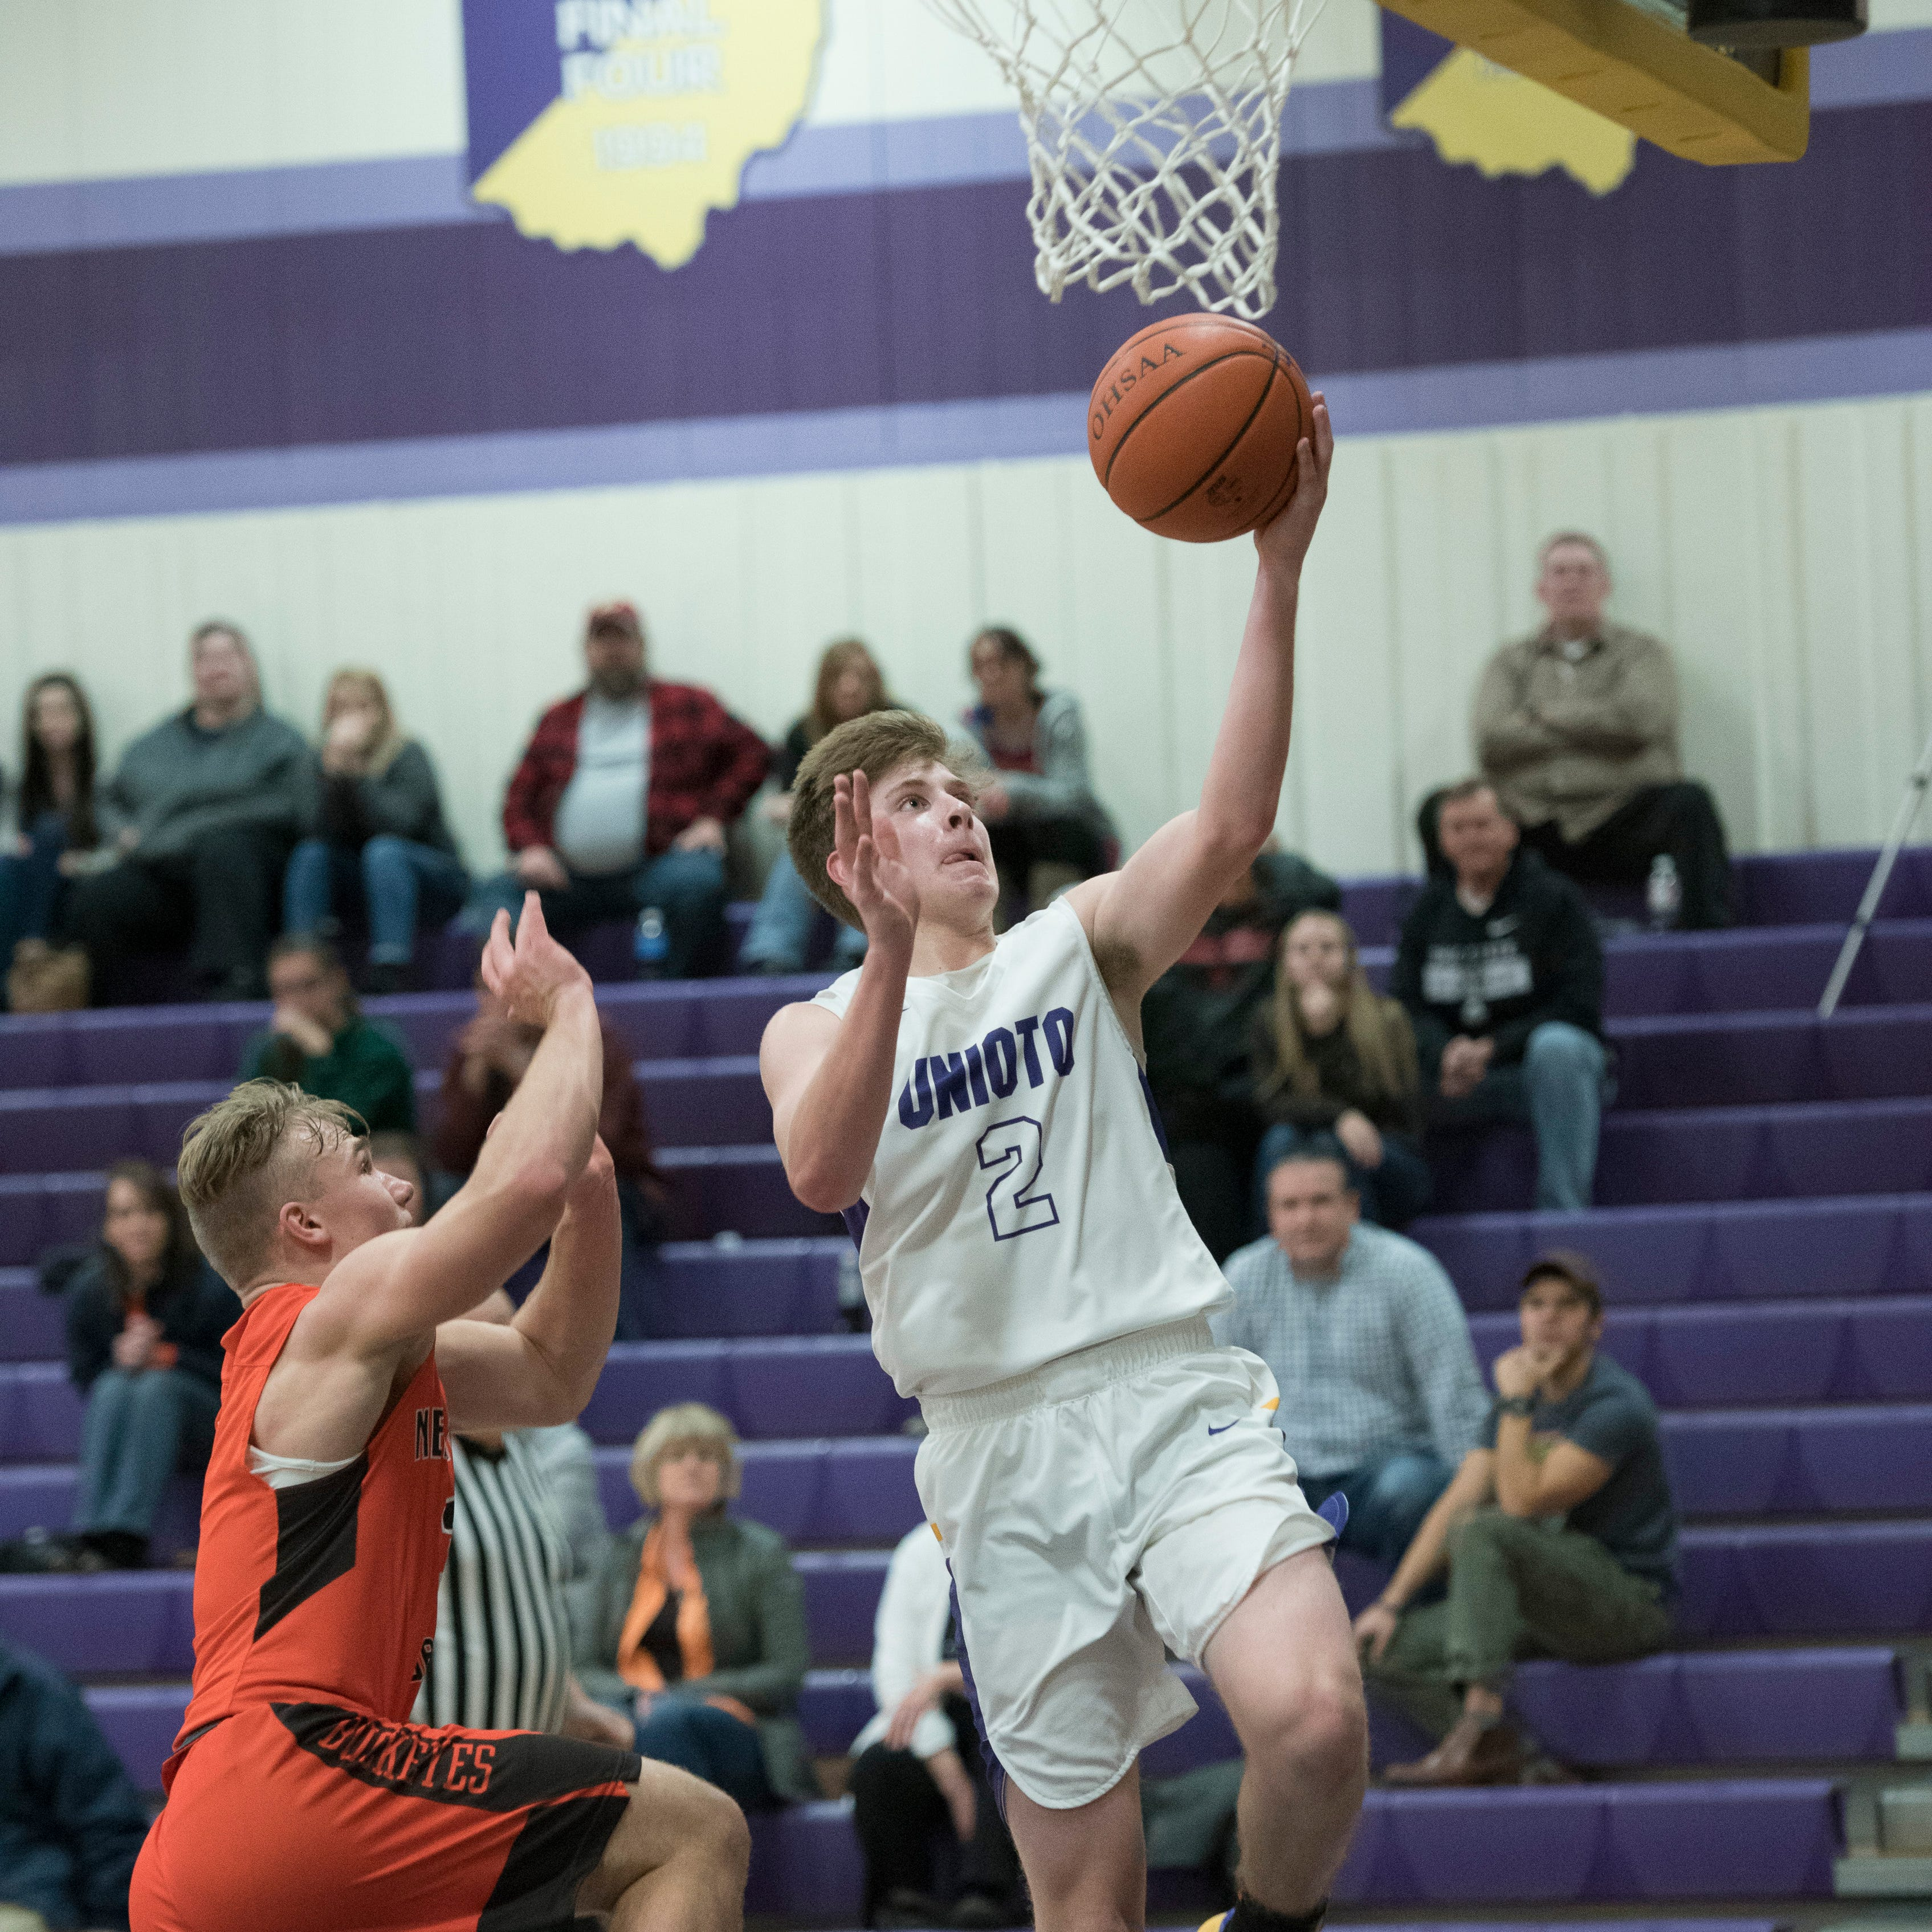 Four takeaways from Unioto vs Nelsonville-York game